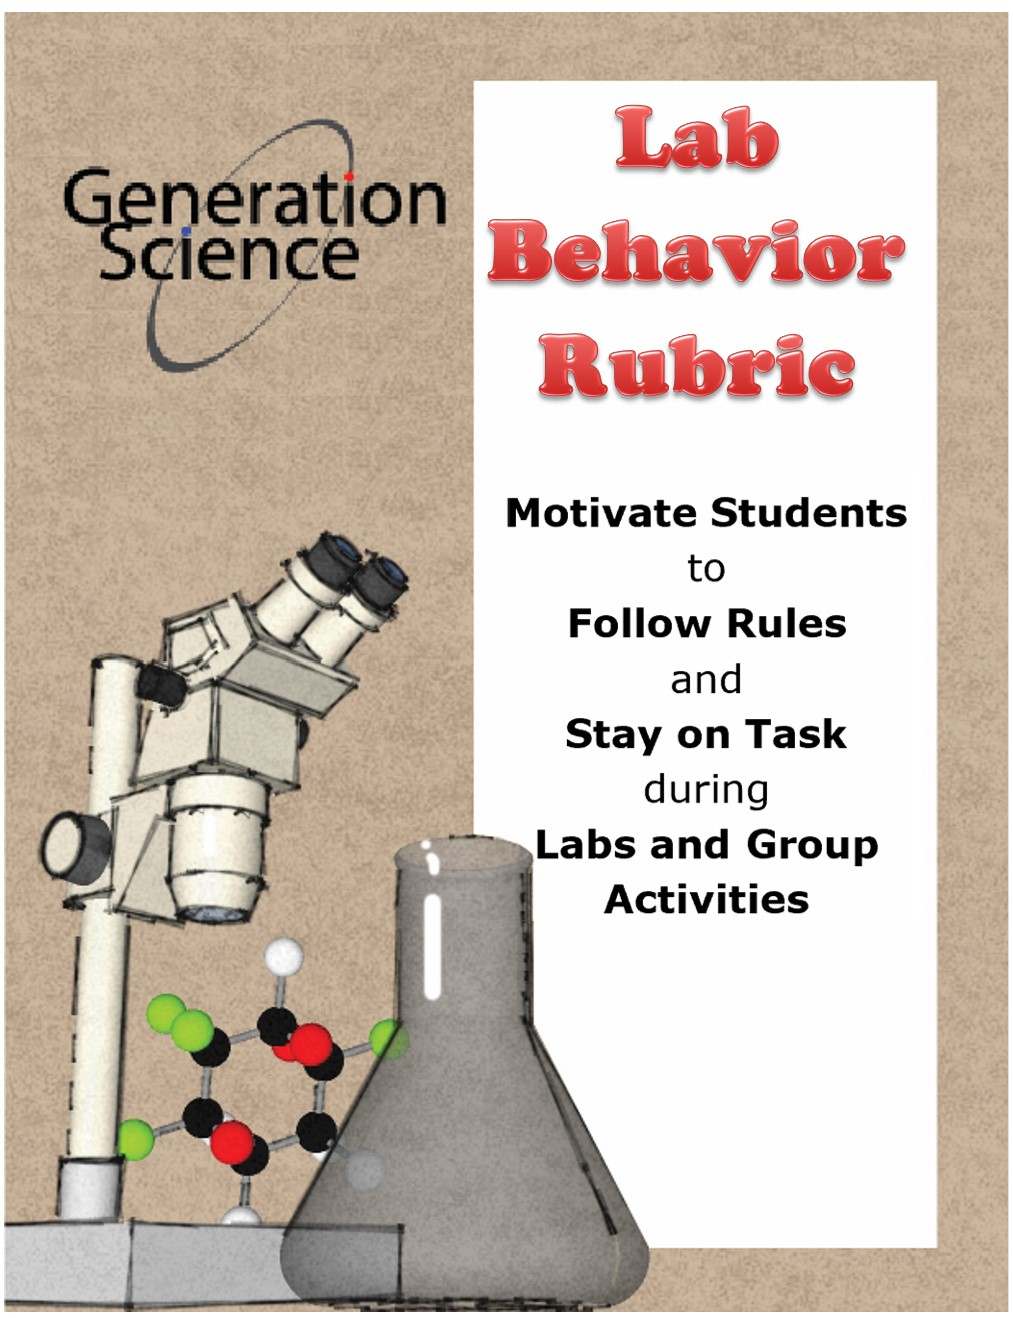 rubric cover image